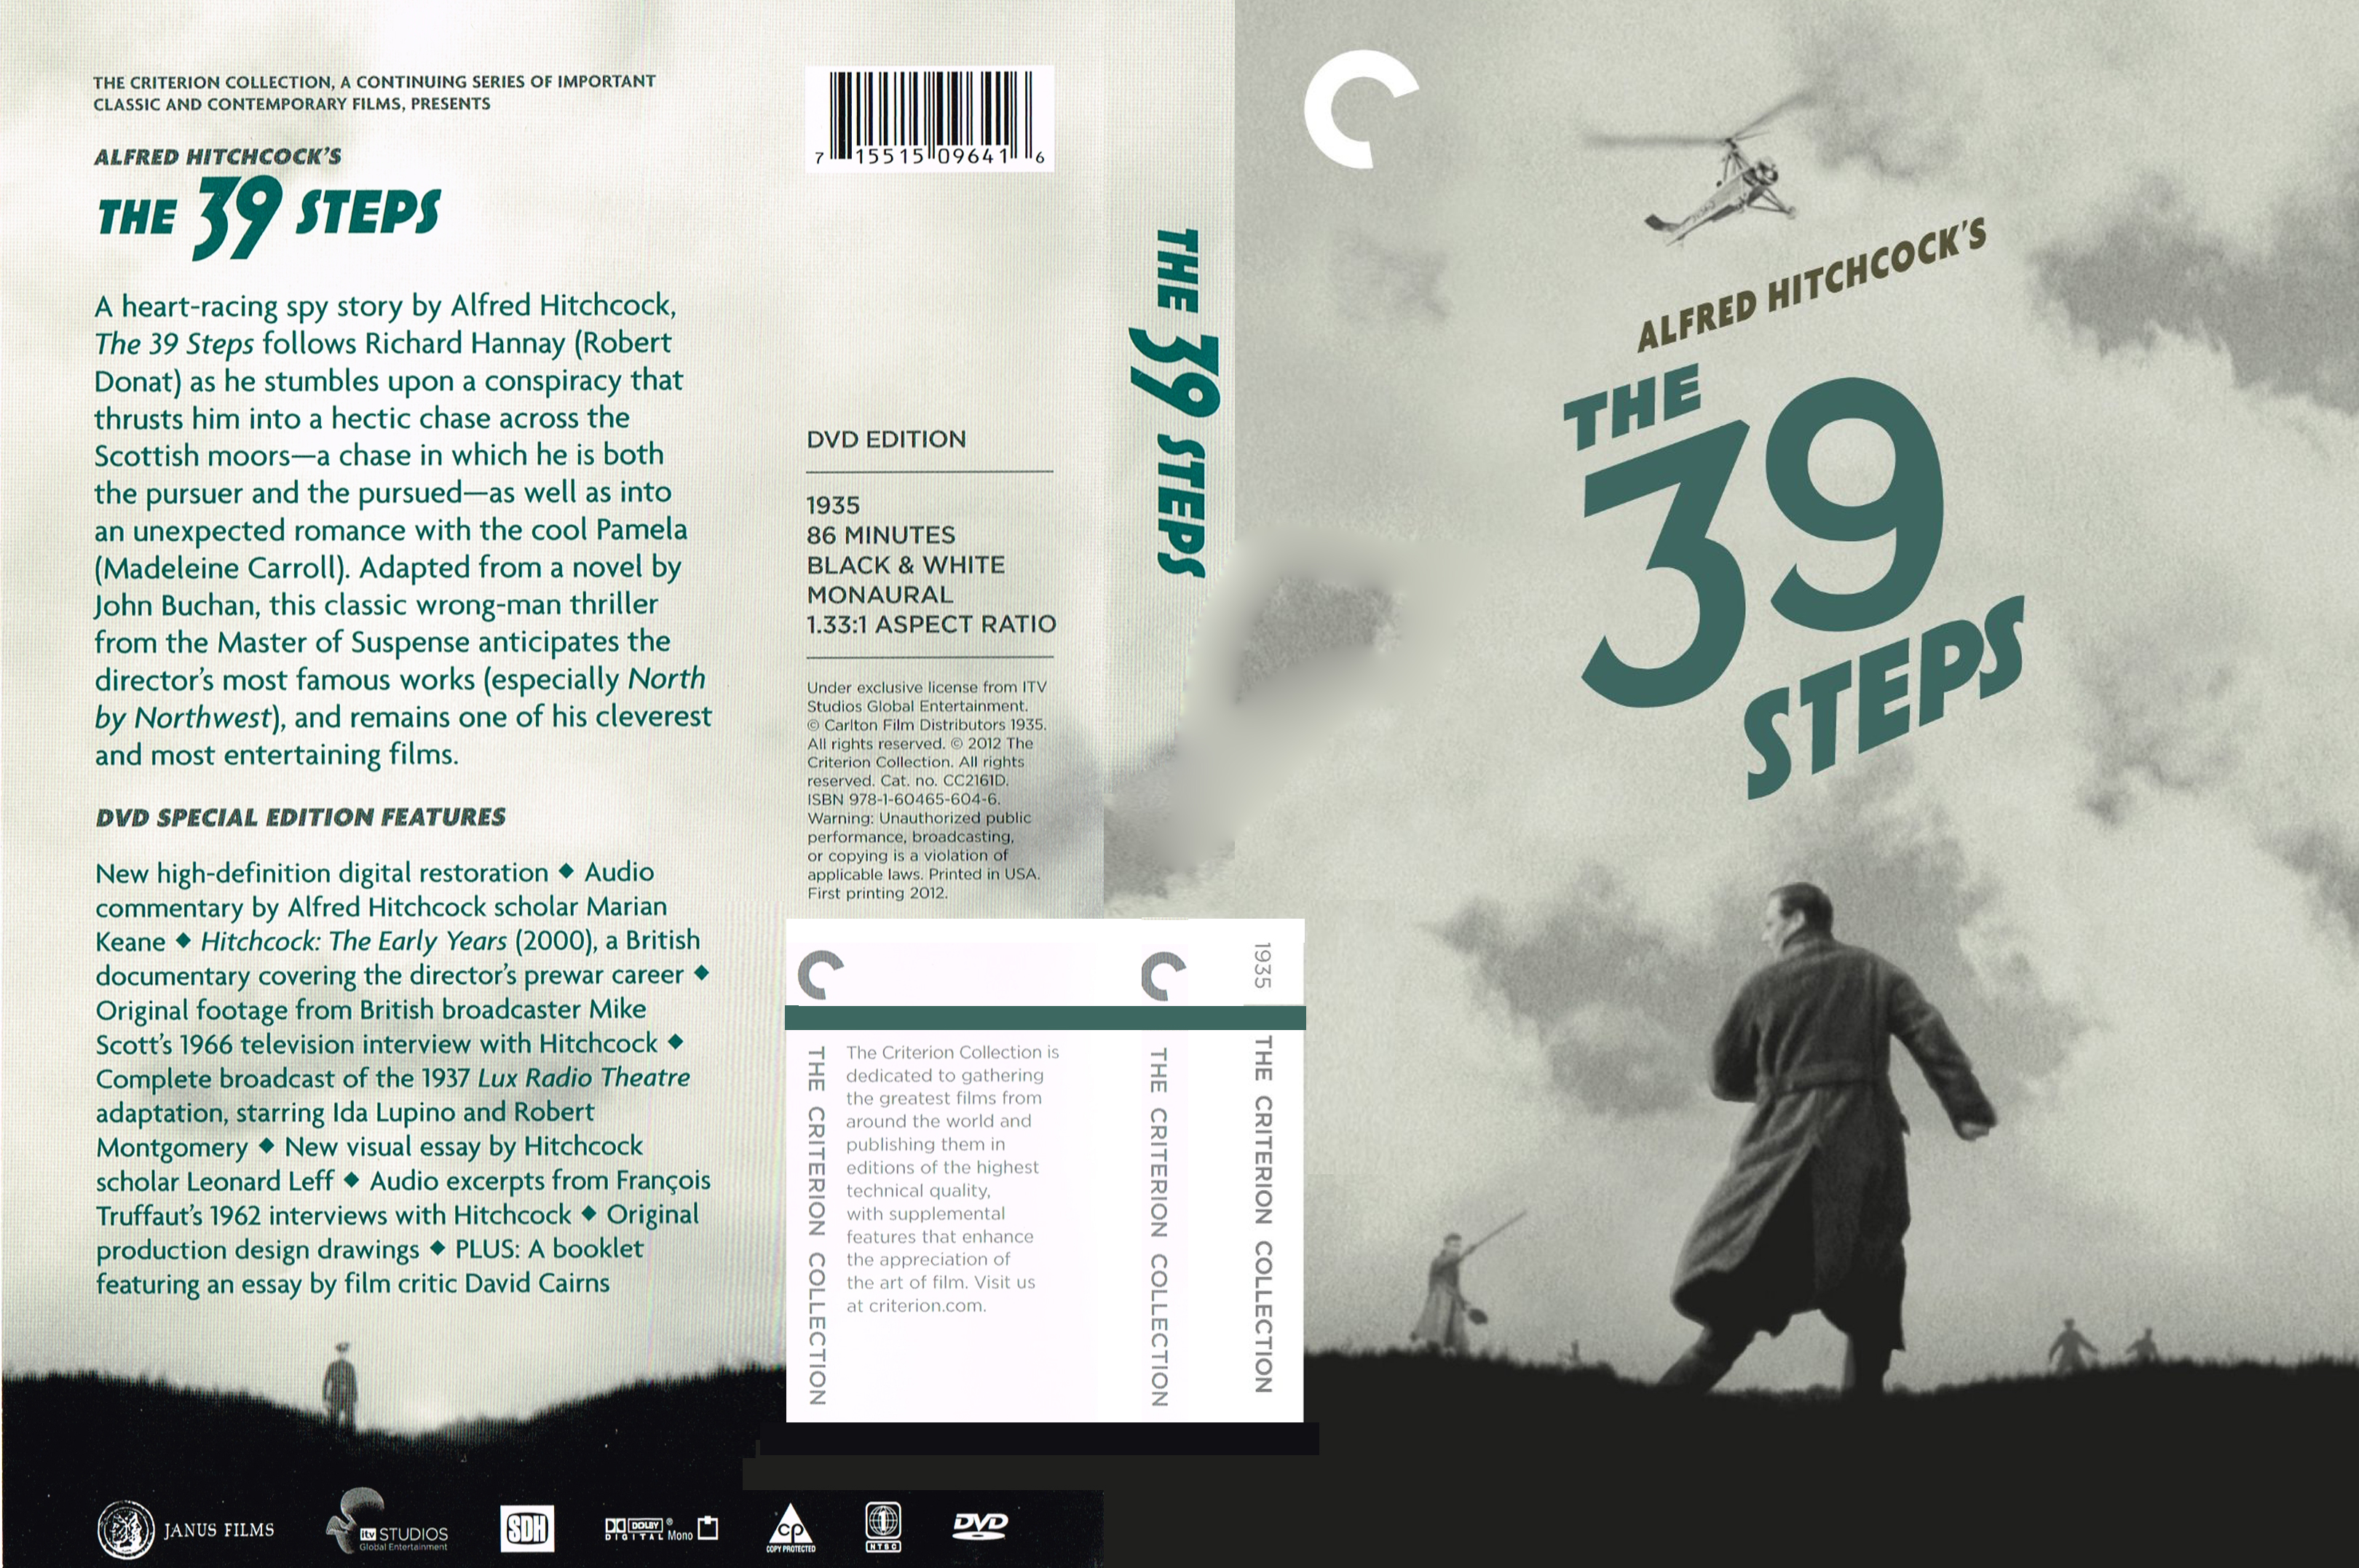 the 39 steps essay An essay or paper on outisde forces in the world in the 39 steps throughout the film the thirty-nine steps, there are many symbols and parallels between outside forces in the world there were also many firsts for hitchcock as a filmmaker which paved the way for his illustrious career.